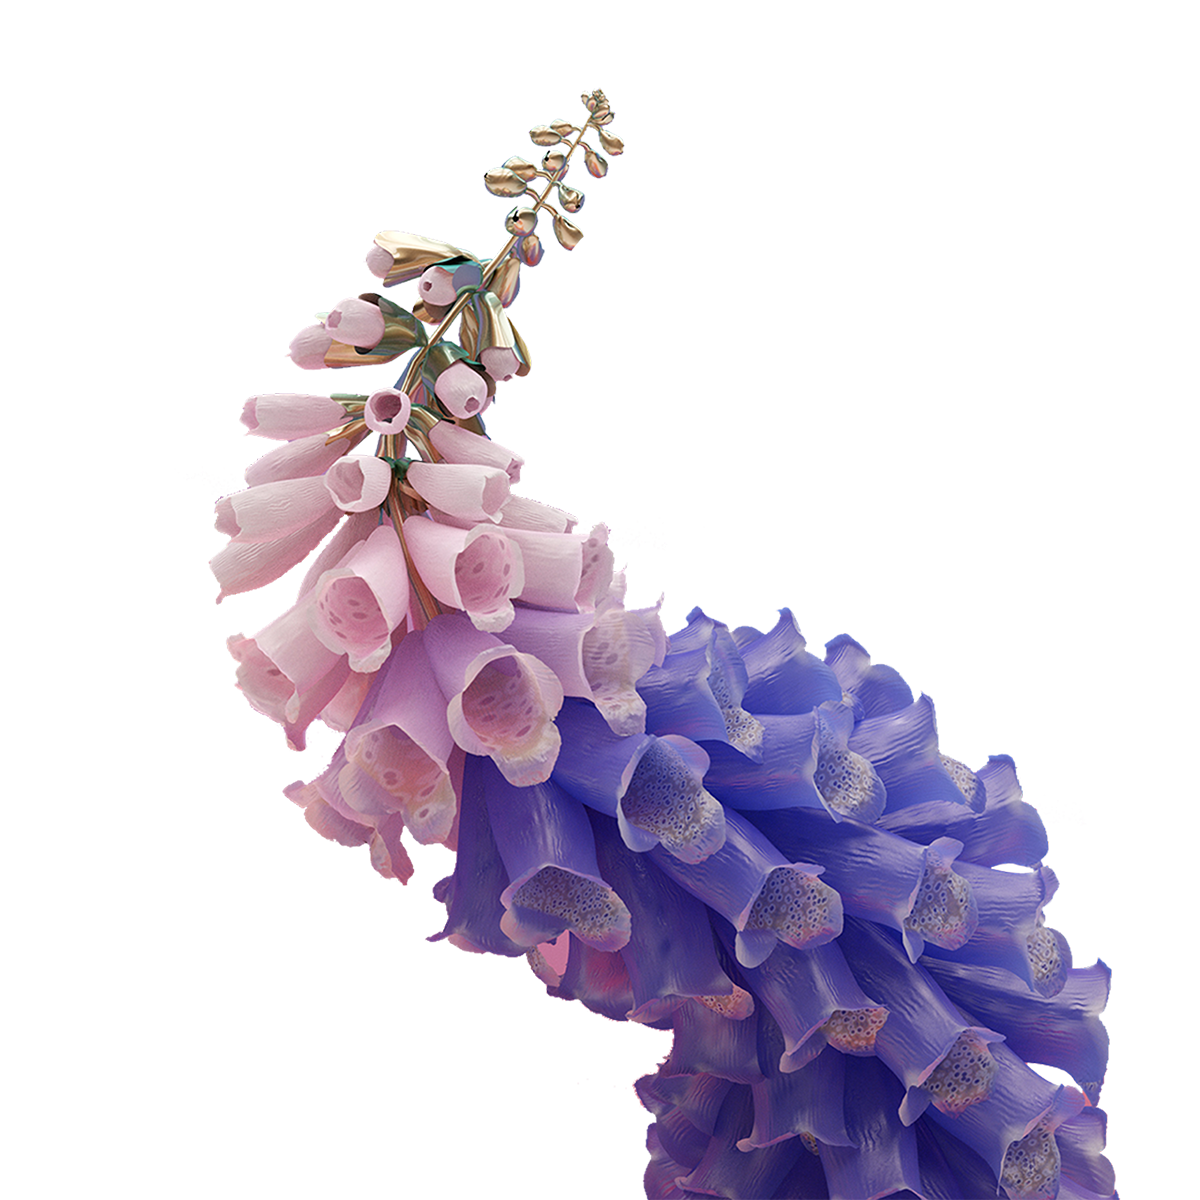 Flower aesthetic png. Images about